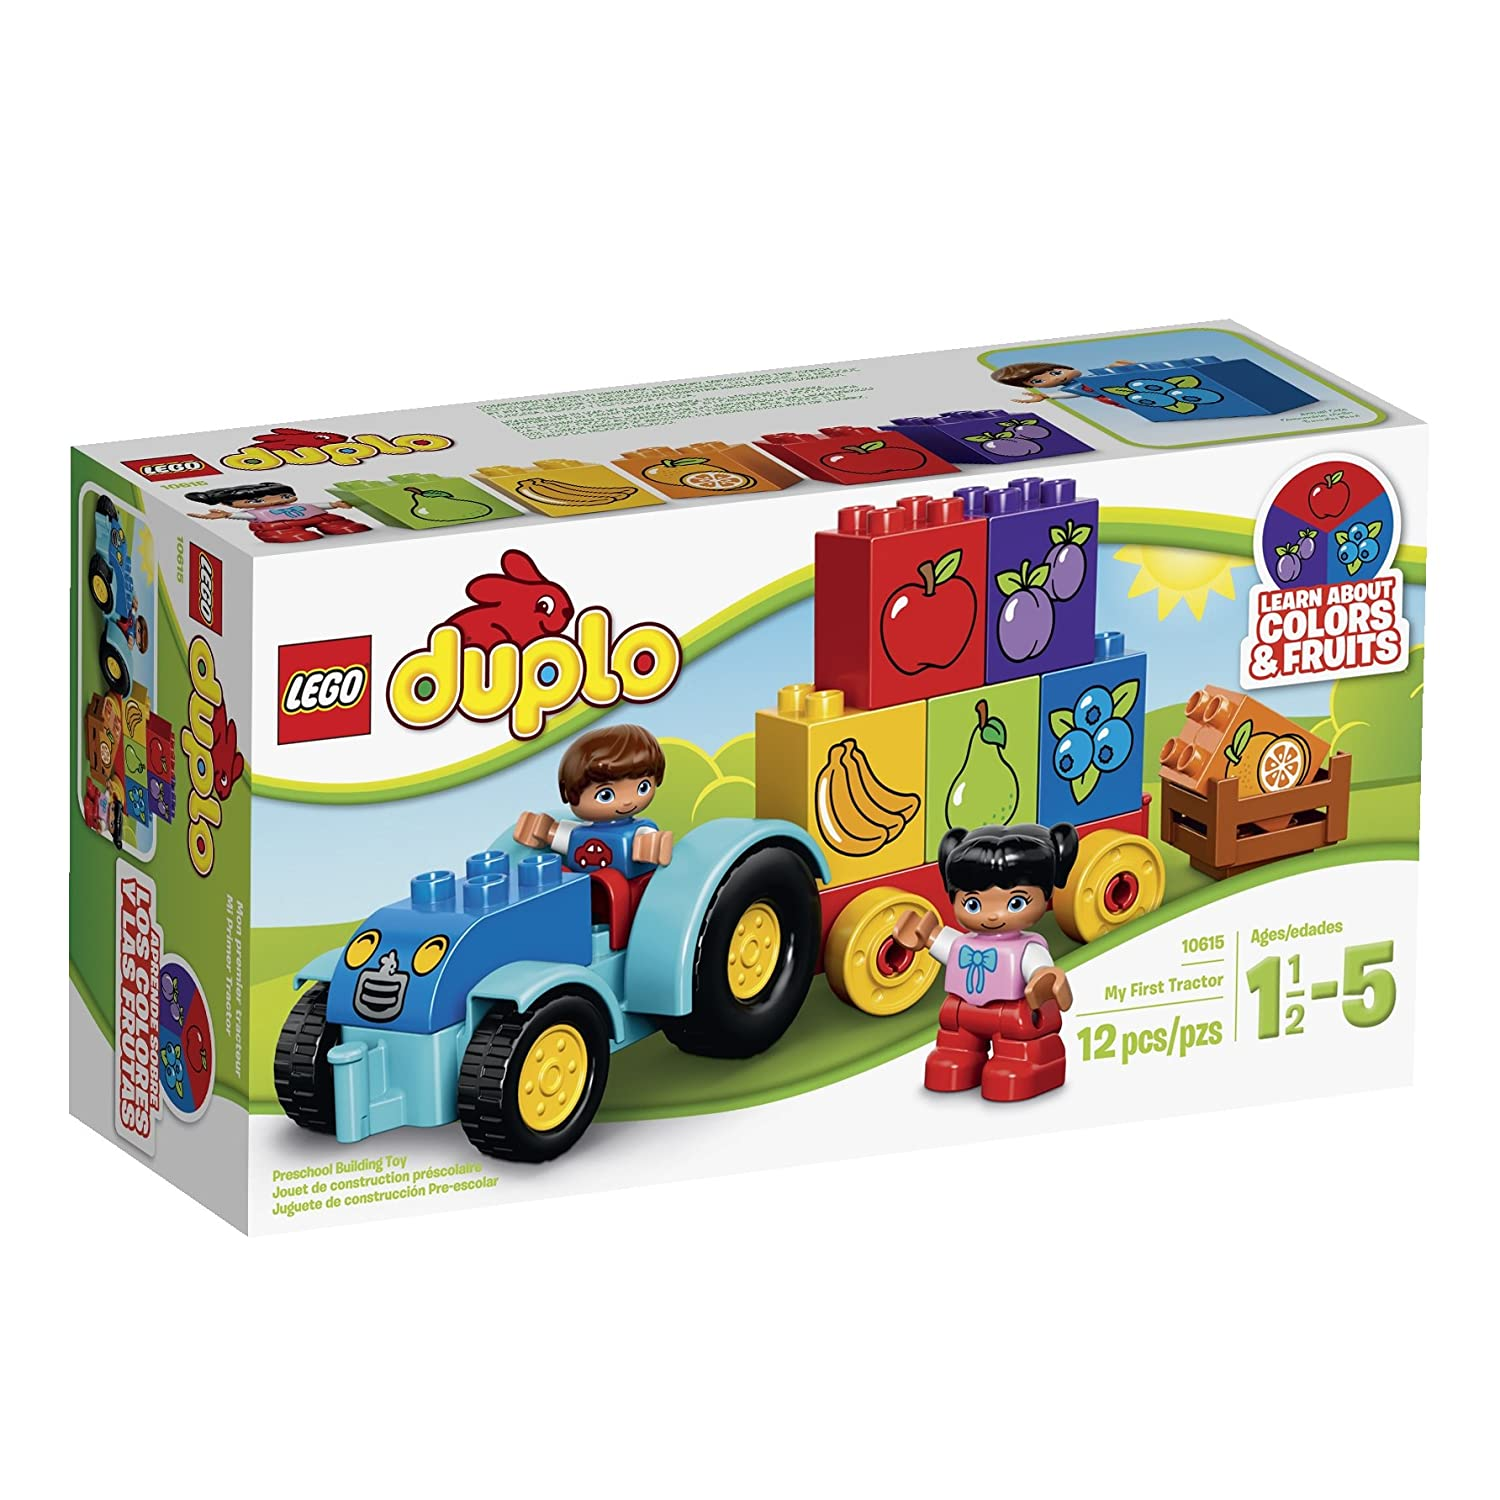 LEGO DUPLO My First Tractor